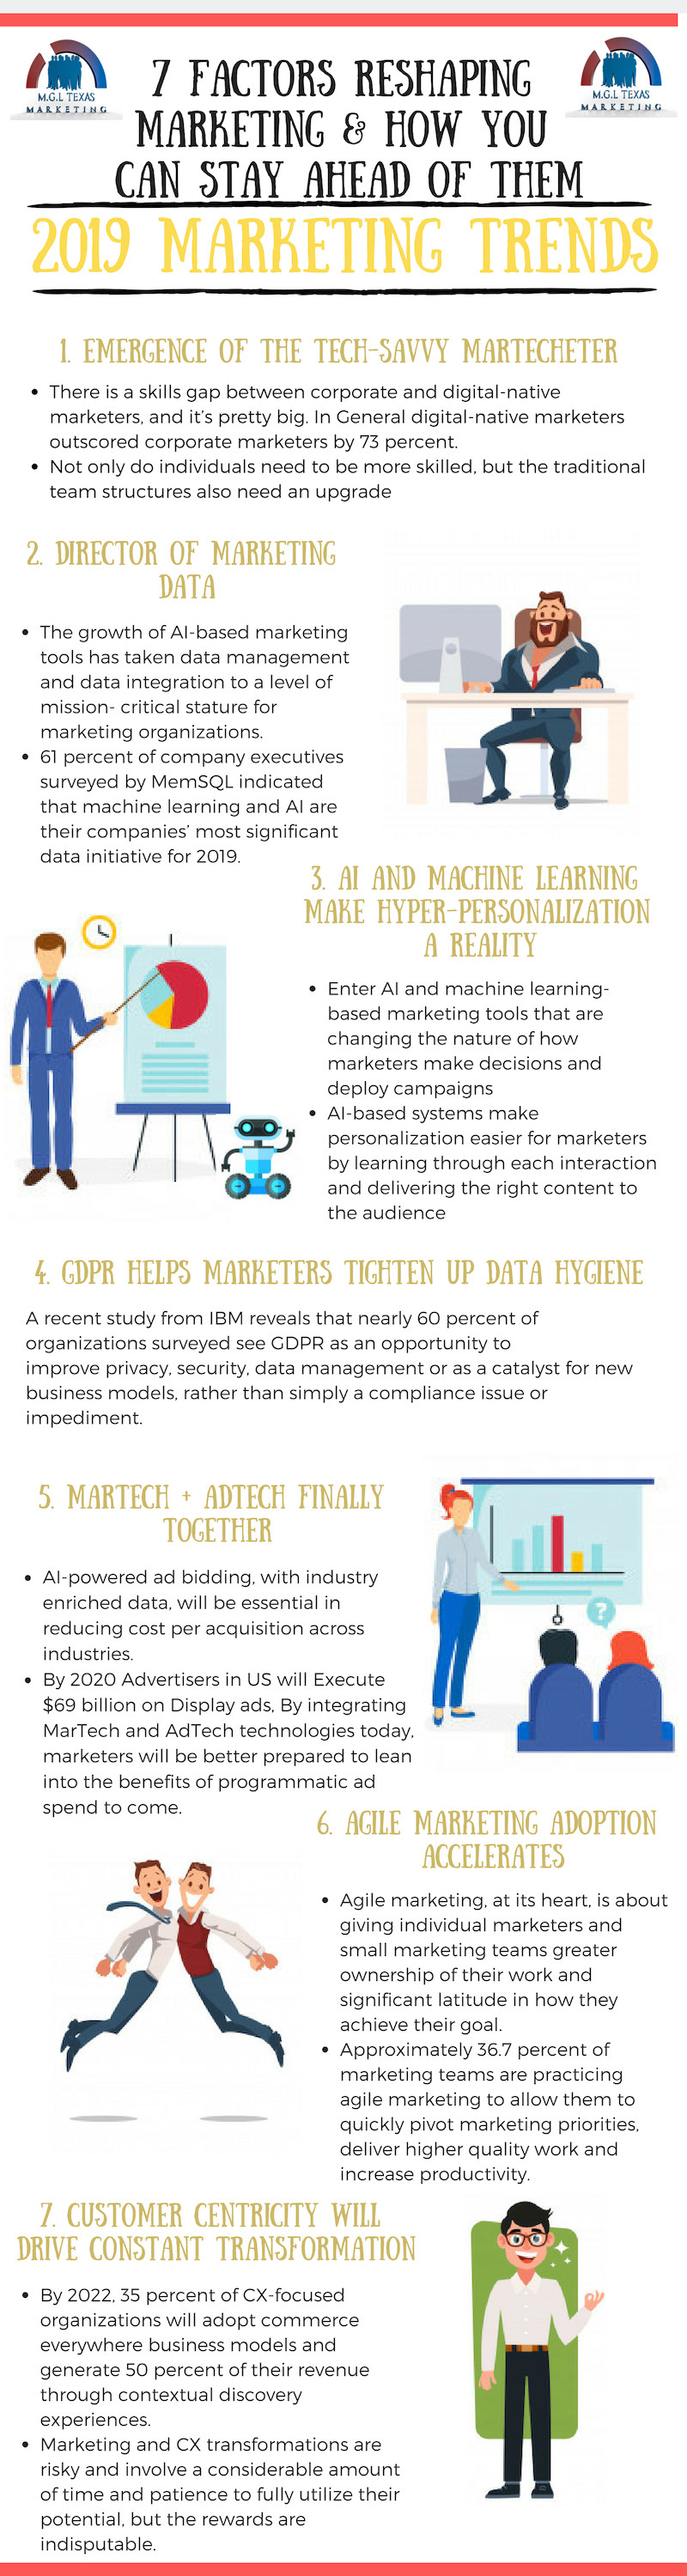 MGL Texas Marketing Trends Infographic